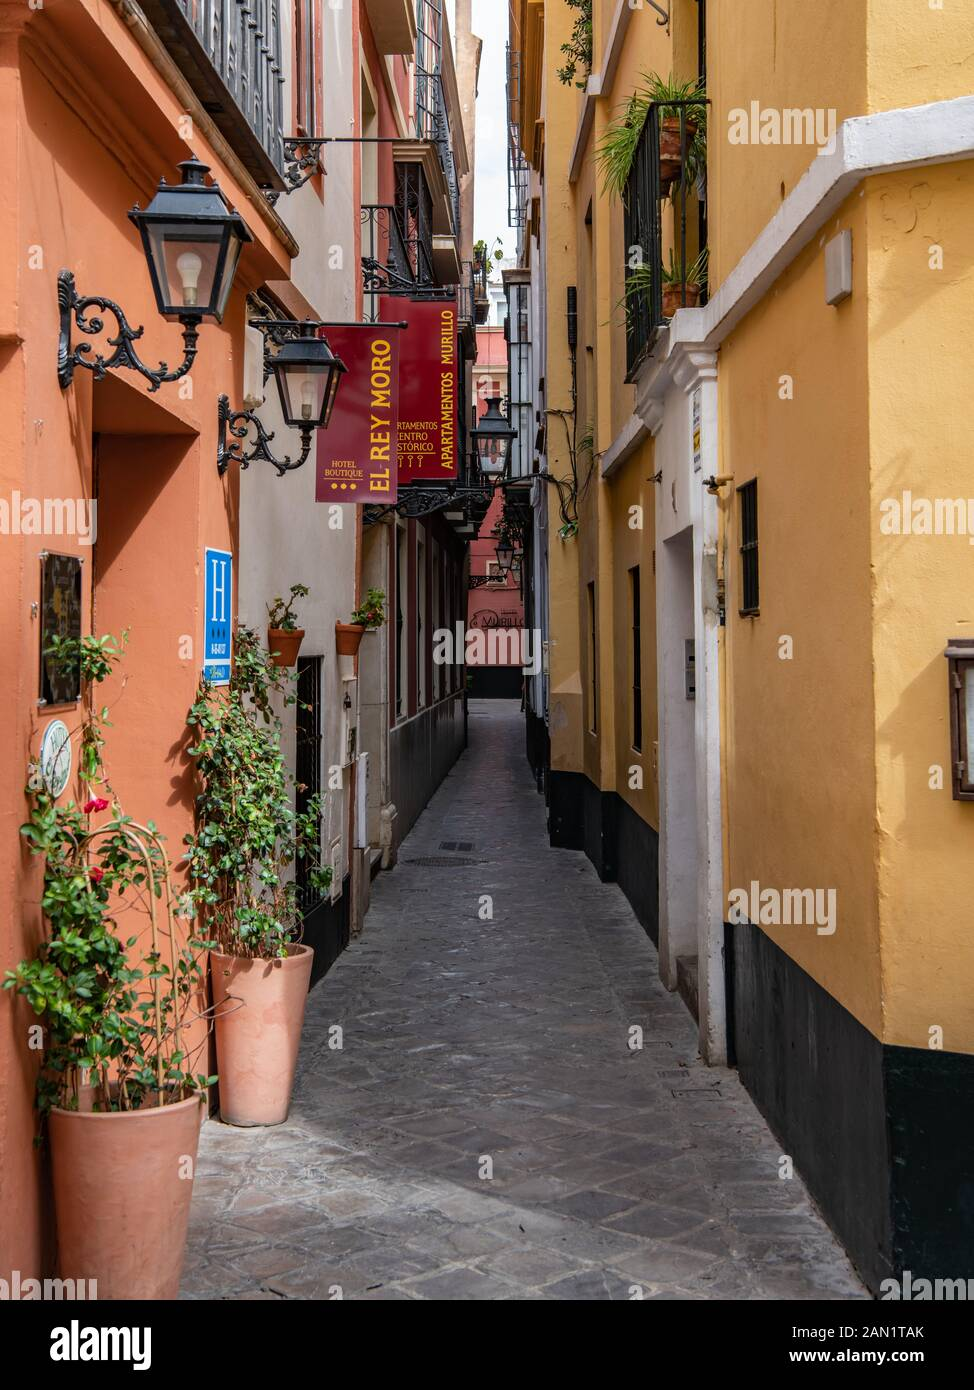 The narrow Calle Reinoso in Seville's old Jewish Quarter, a maze of narrow, streets, lanes and alleyways in the Barrio de Santa Cruz. Stock Photo